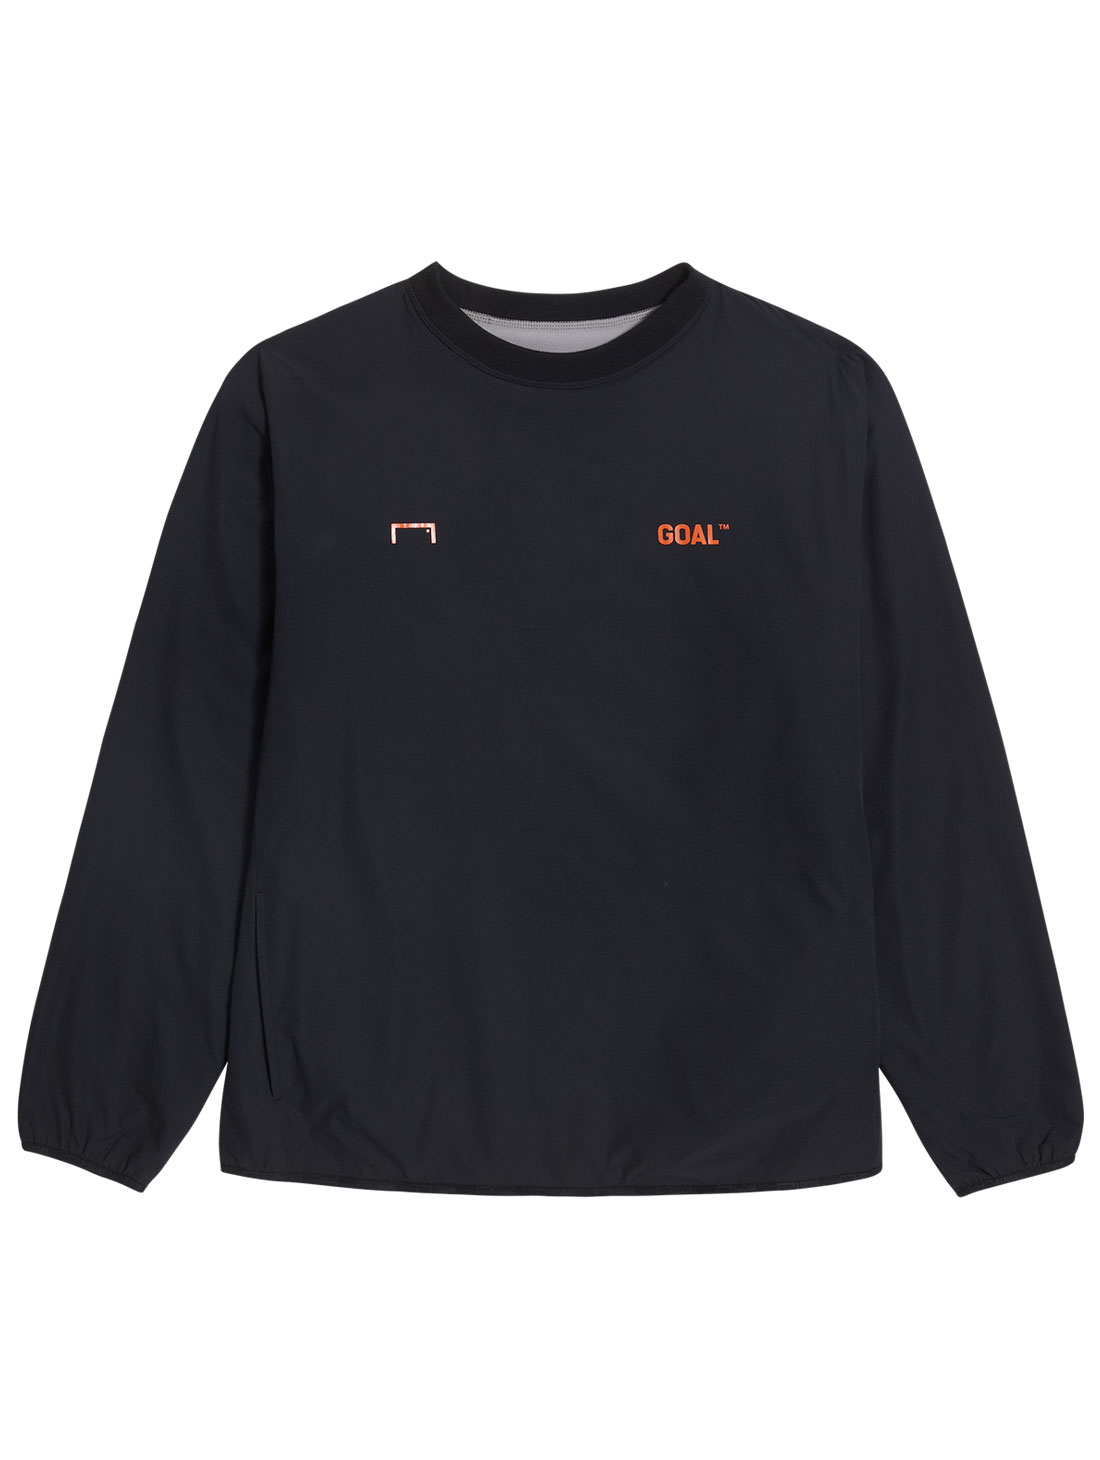 GOALSTUDIO REVERSIBLE PULLOVER - GREY/BLACK